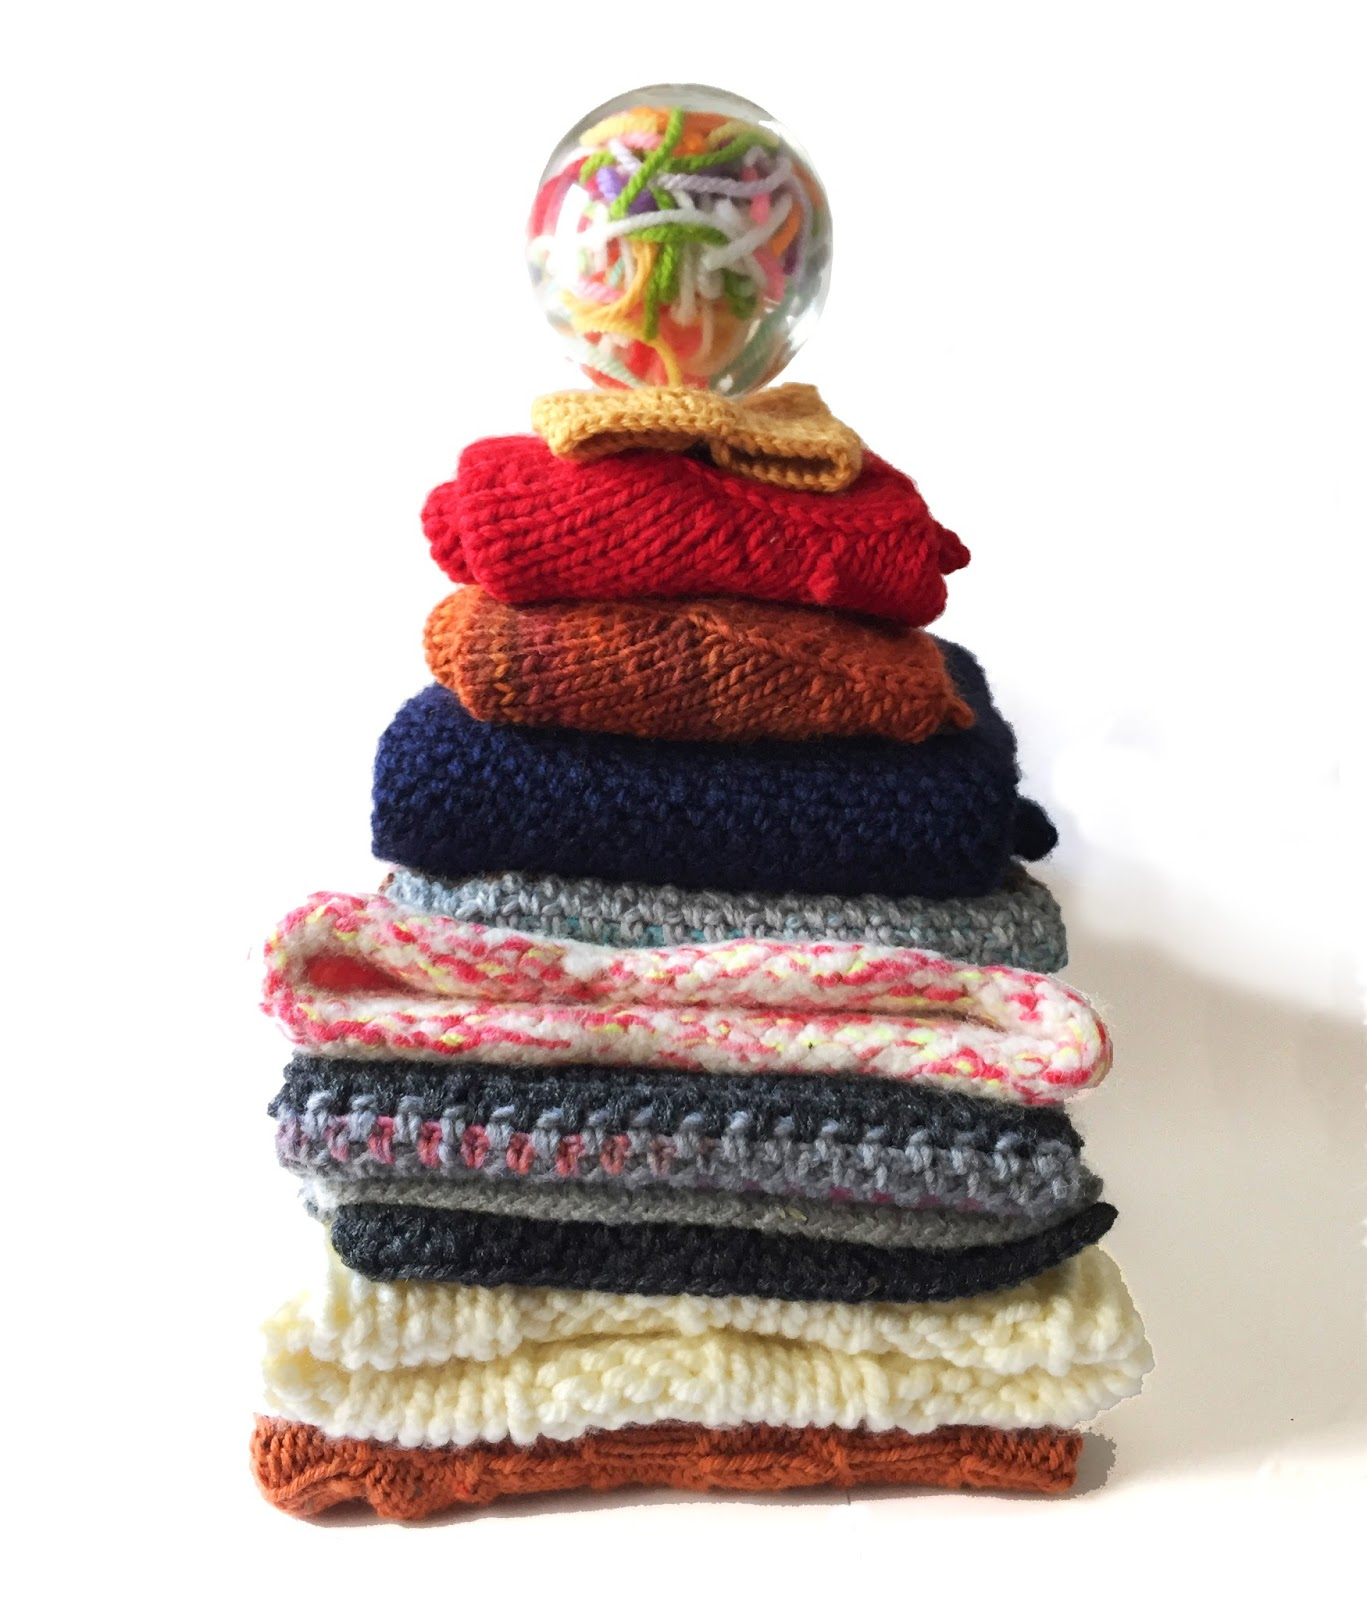 What Does Crochet Mean : What does crochet mean to you? What does it give you compared to other ...